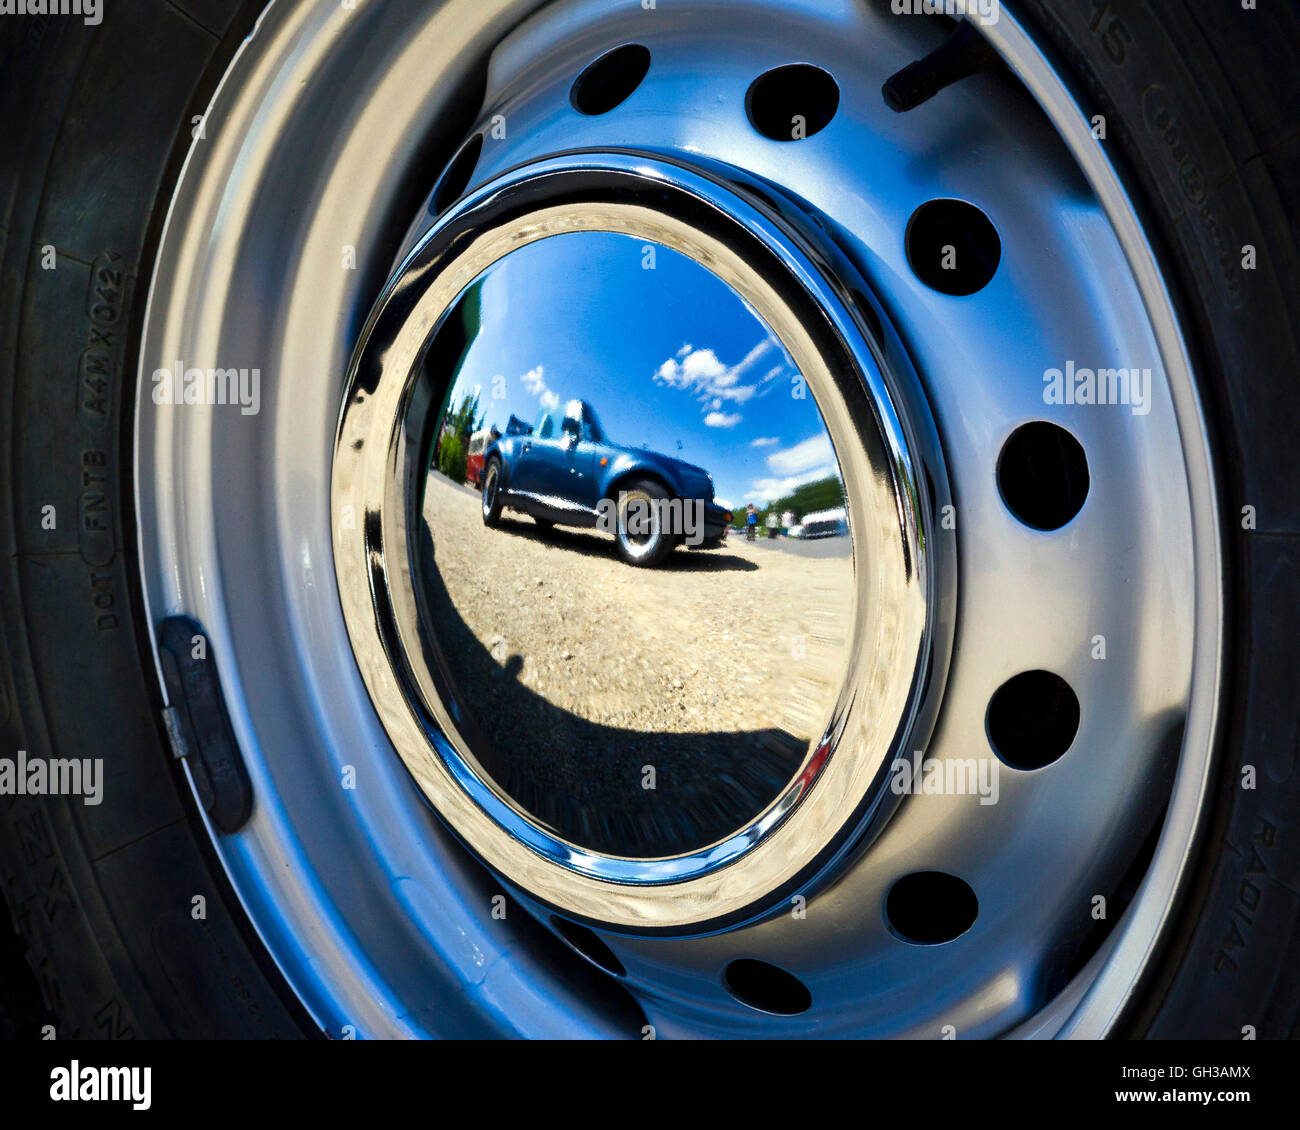 Reflection of a vintage car in the wheel cover of another vintage ...